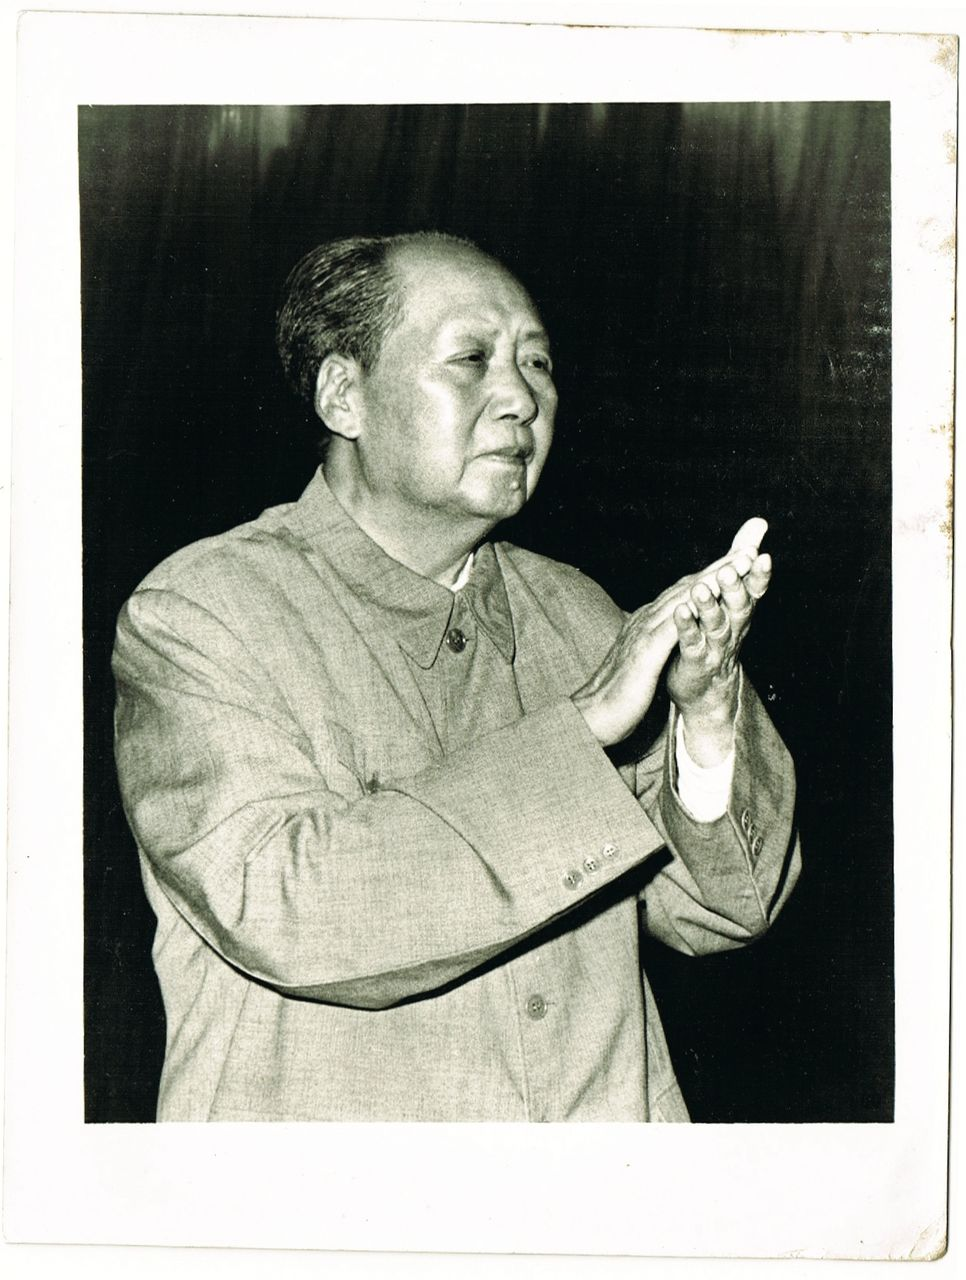 Cultural Revolution China: Authentic Photo Mao clapping Hands